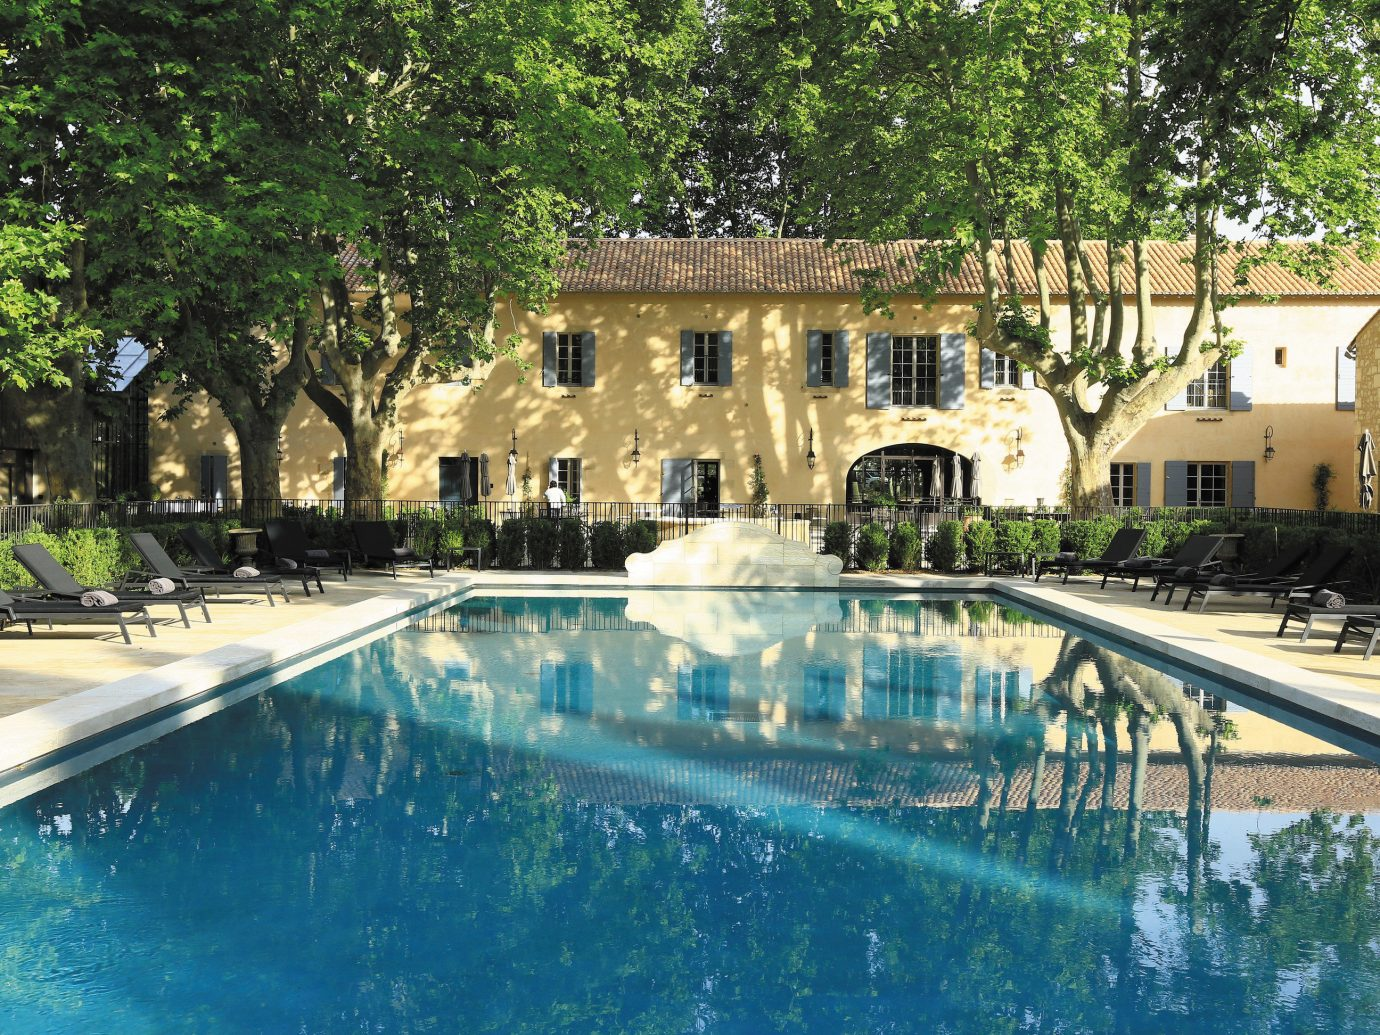 Austria England europe France Germany Italy Outdoors + Adventure Portugal Spain Trip Ideas tree outdoor swimming pool property estate building reflecting pool palace Resort mansion Villa plaza backyard Pool Courtyard water feature swimming